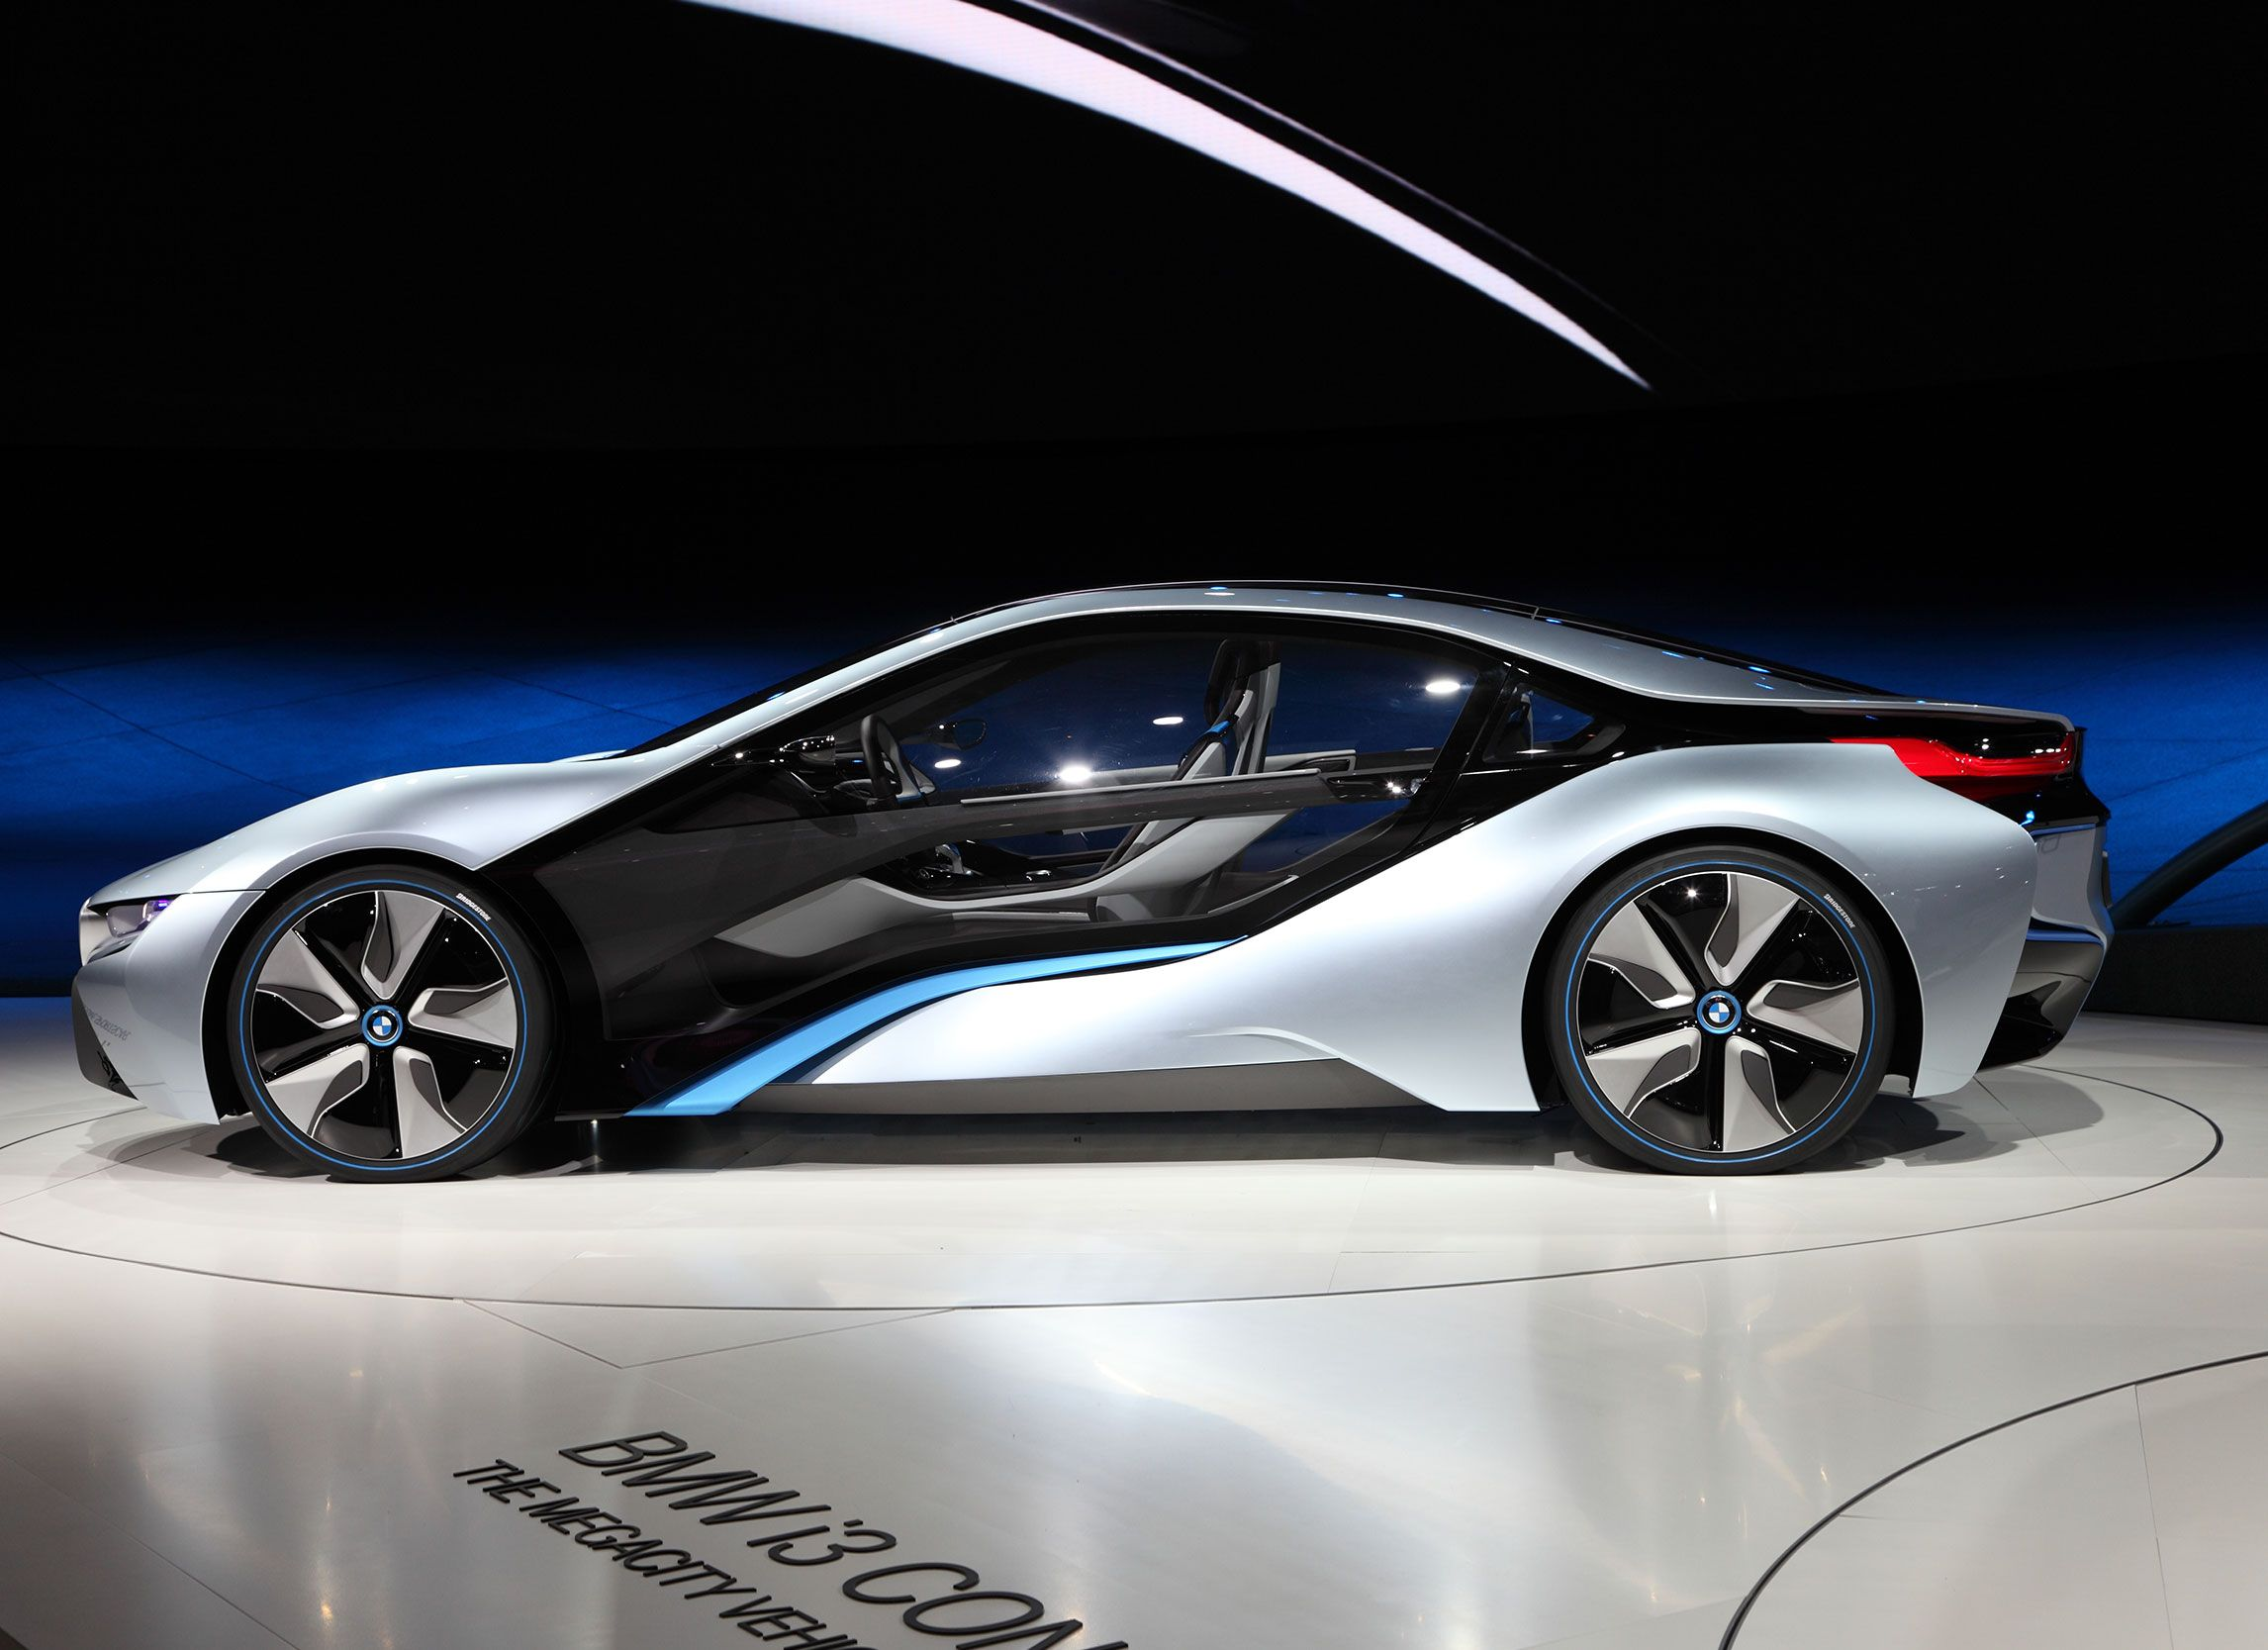 Cool Car Awesomeness Pinterest Cars - Cool cars driving